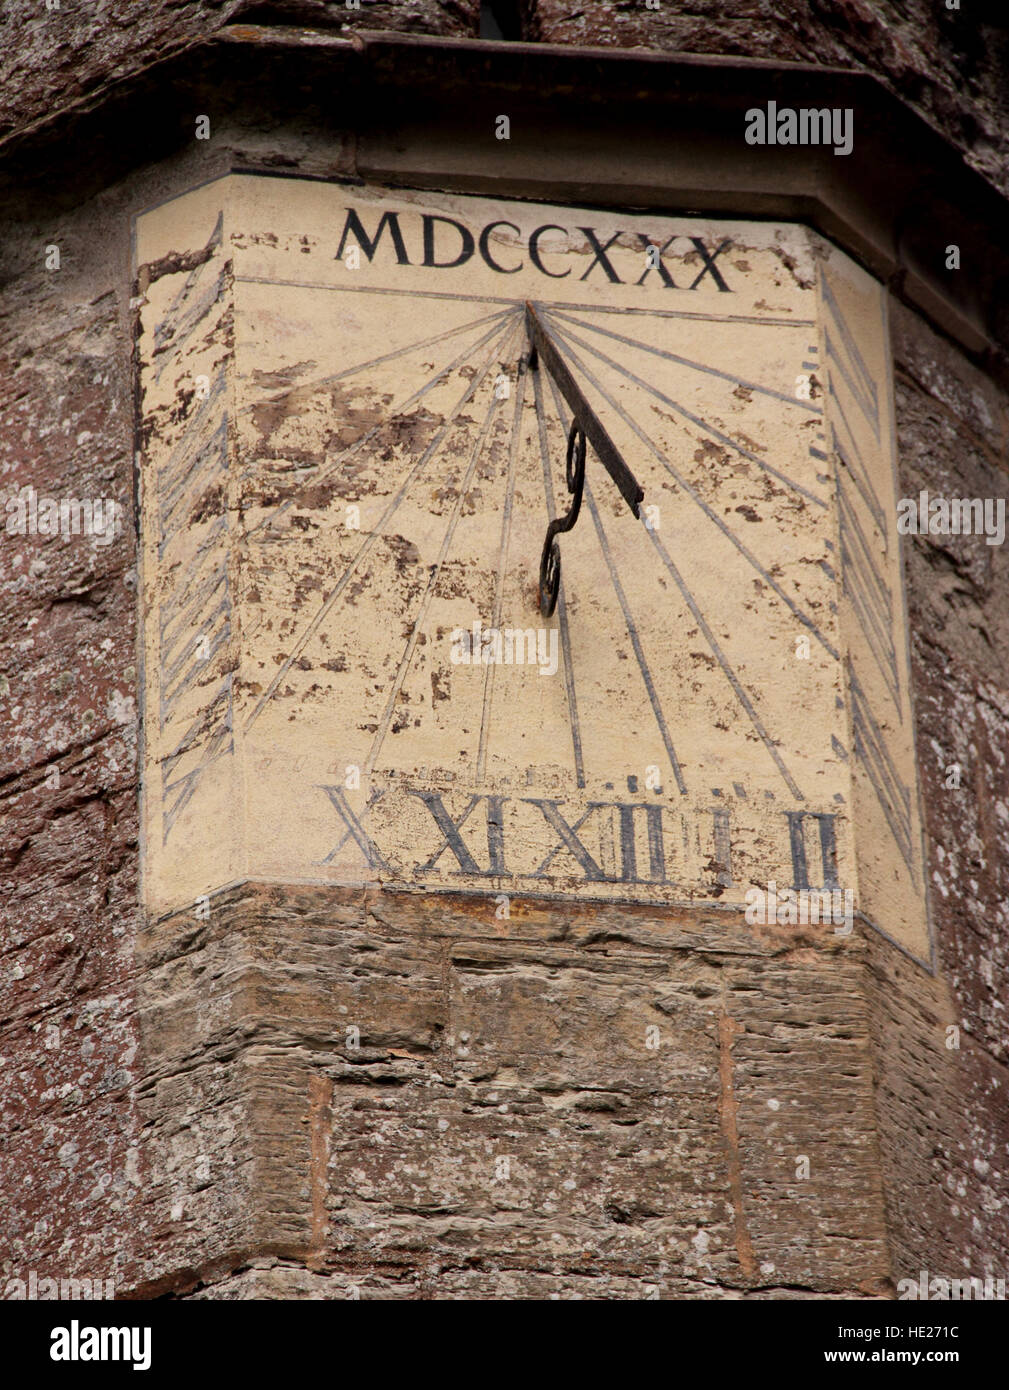 Sundial high on a church tower, roman numerals on the face, and dated MDCCXXX, or 1730 AD - Stock Image